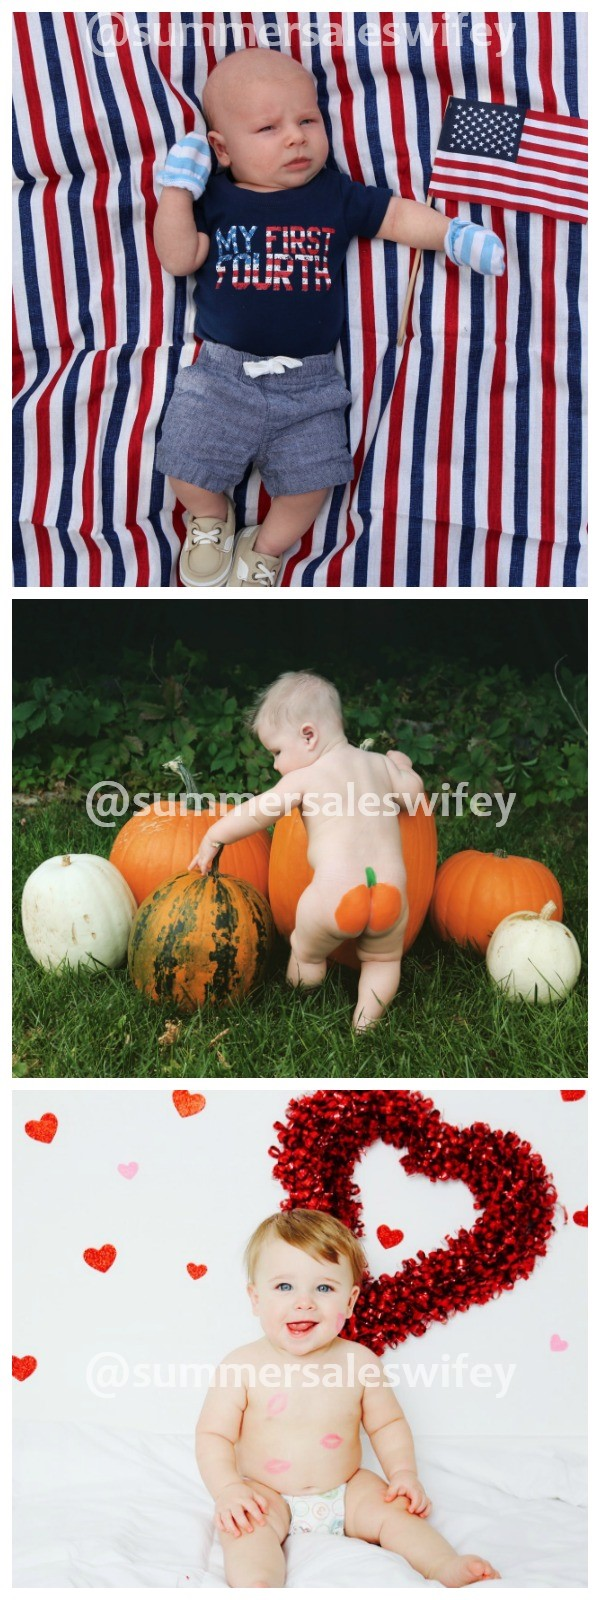 Collage of monthly baby photo ideas for holidays.